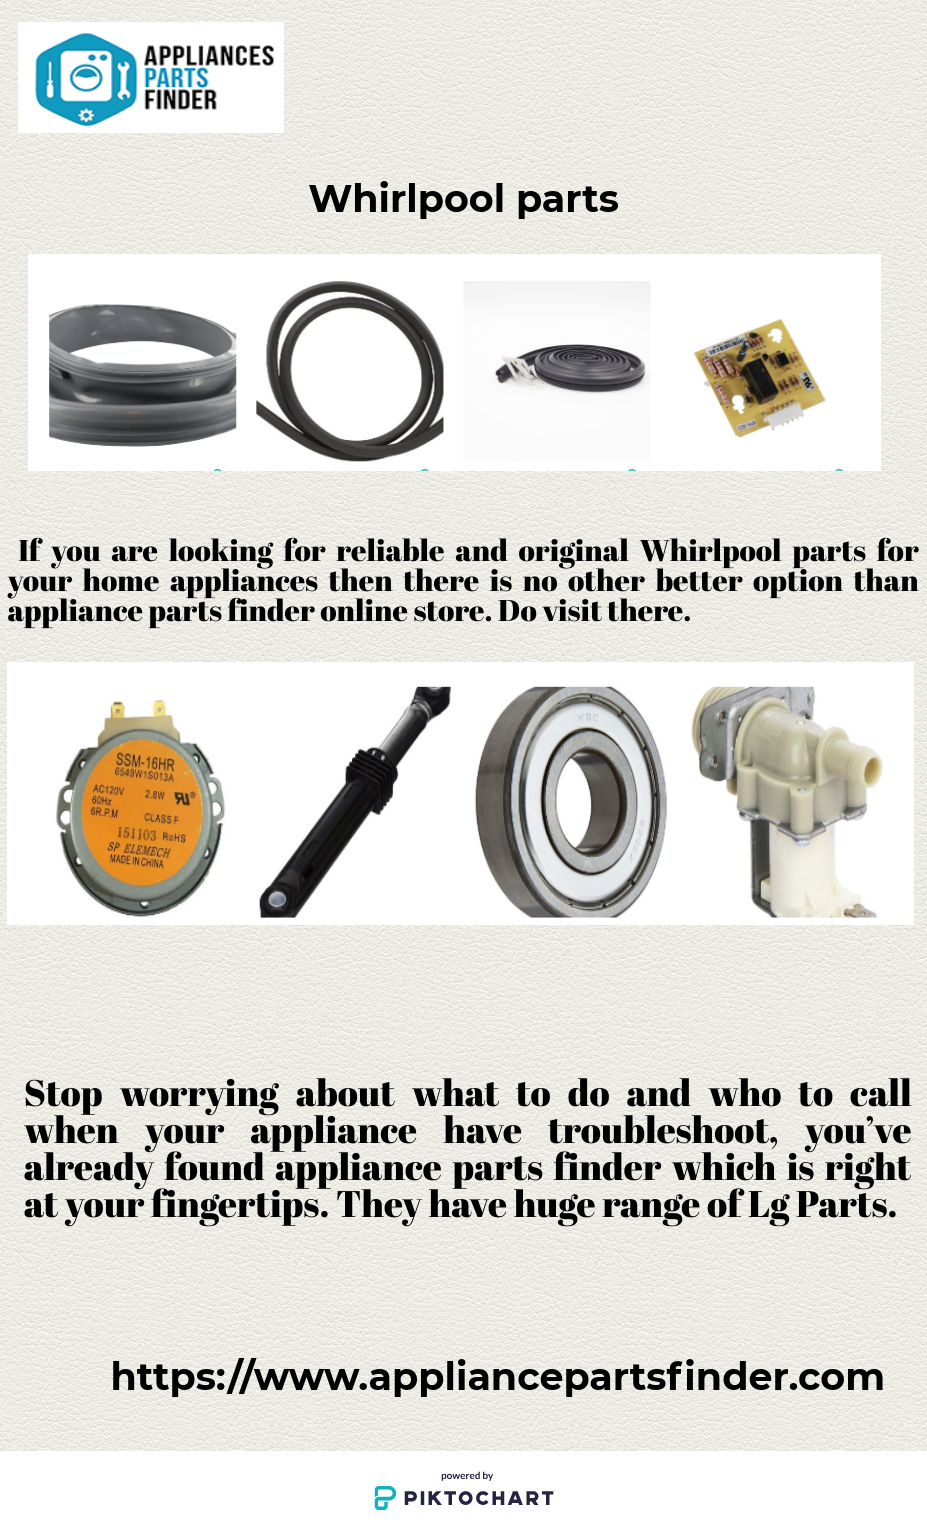 Appliances parts finder appliancespartsfinder on pinterest